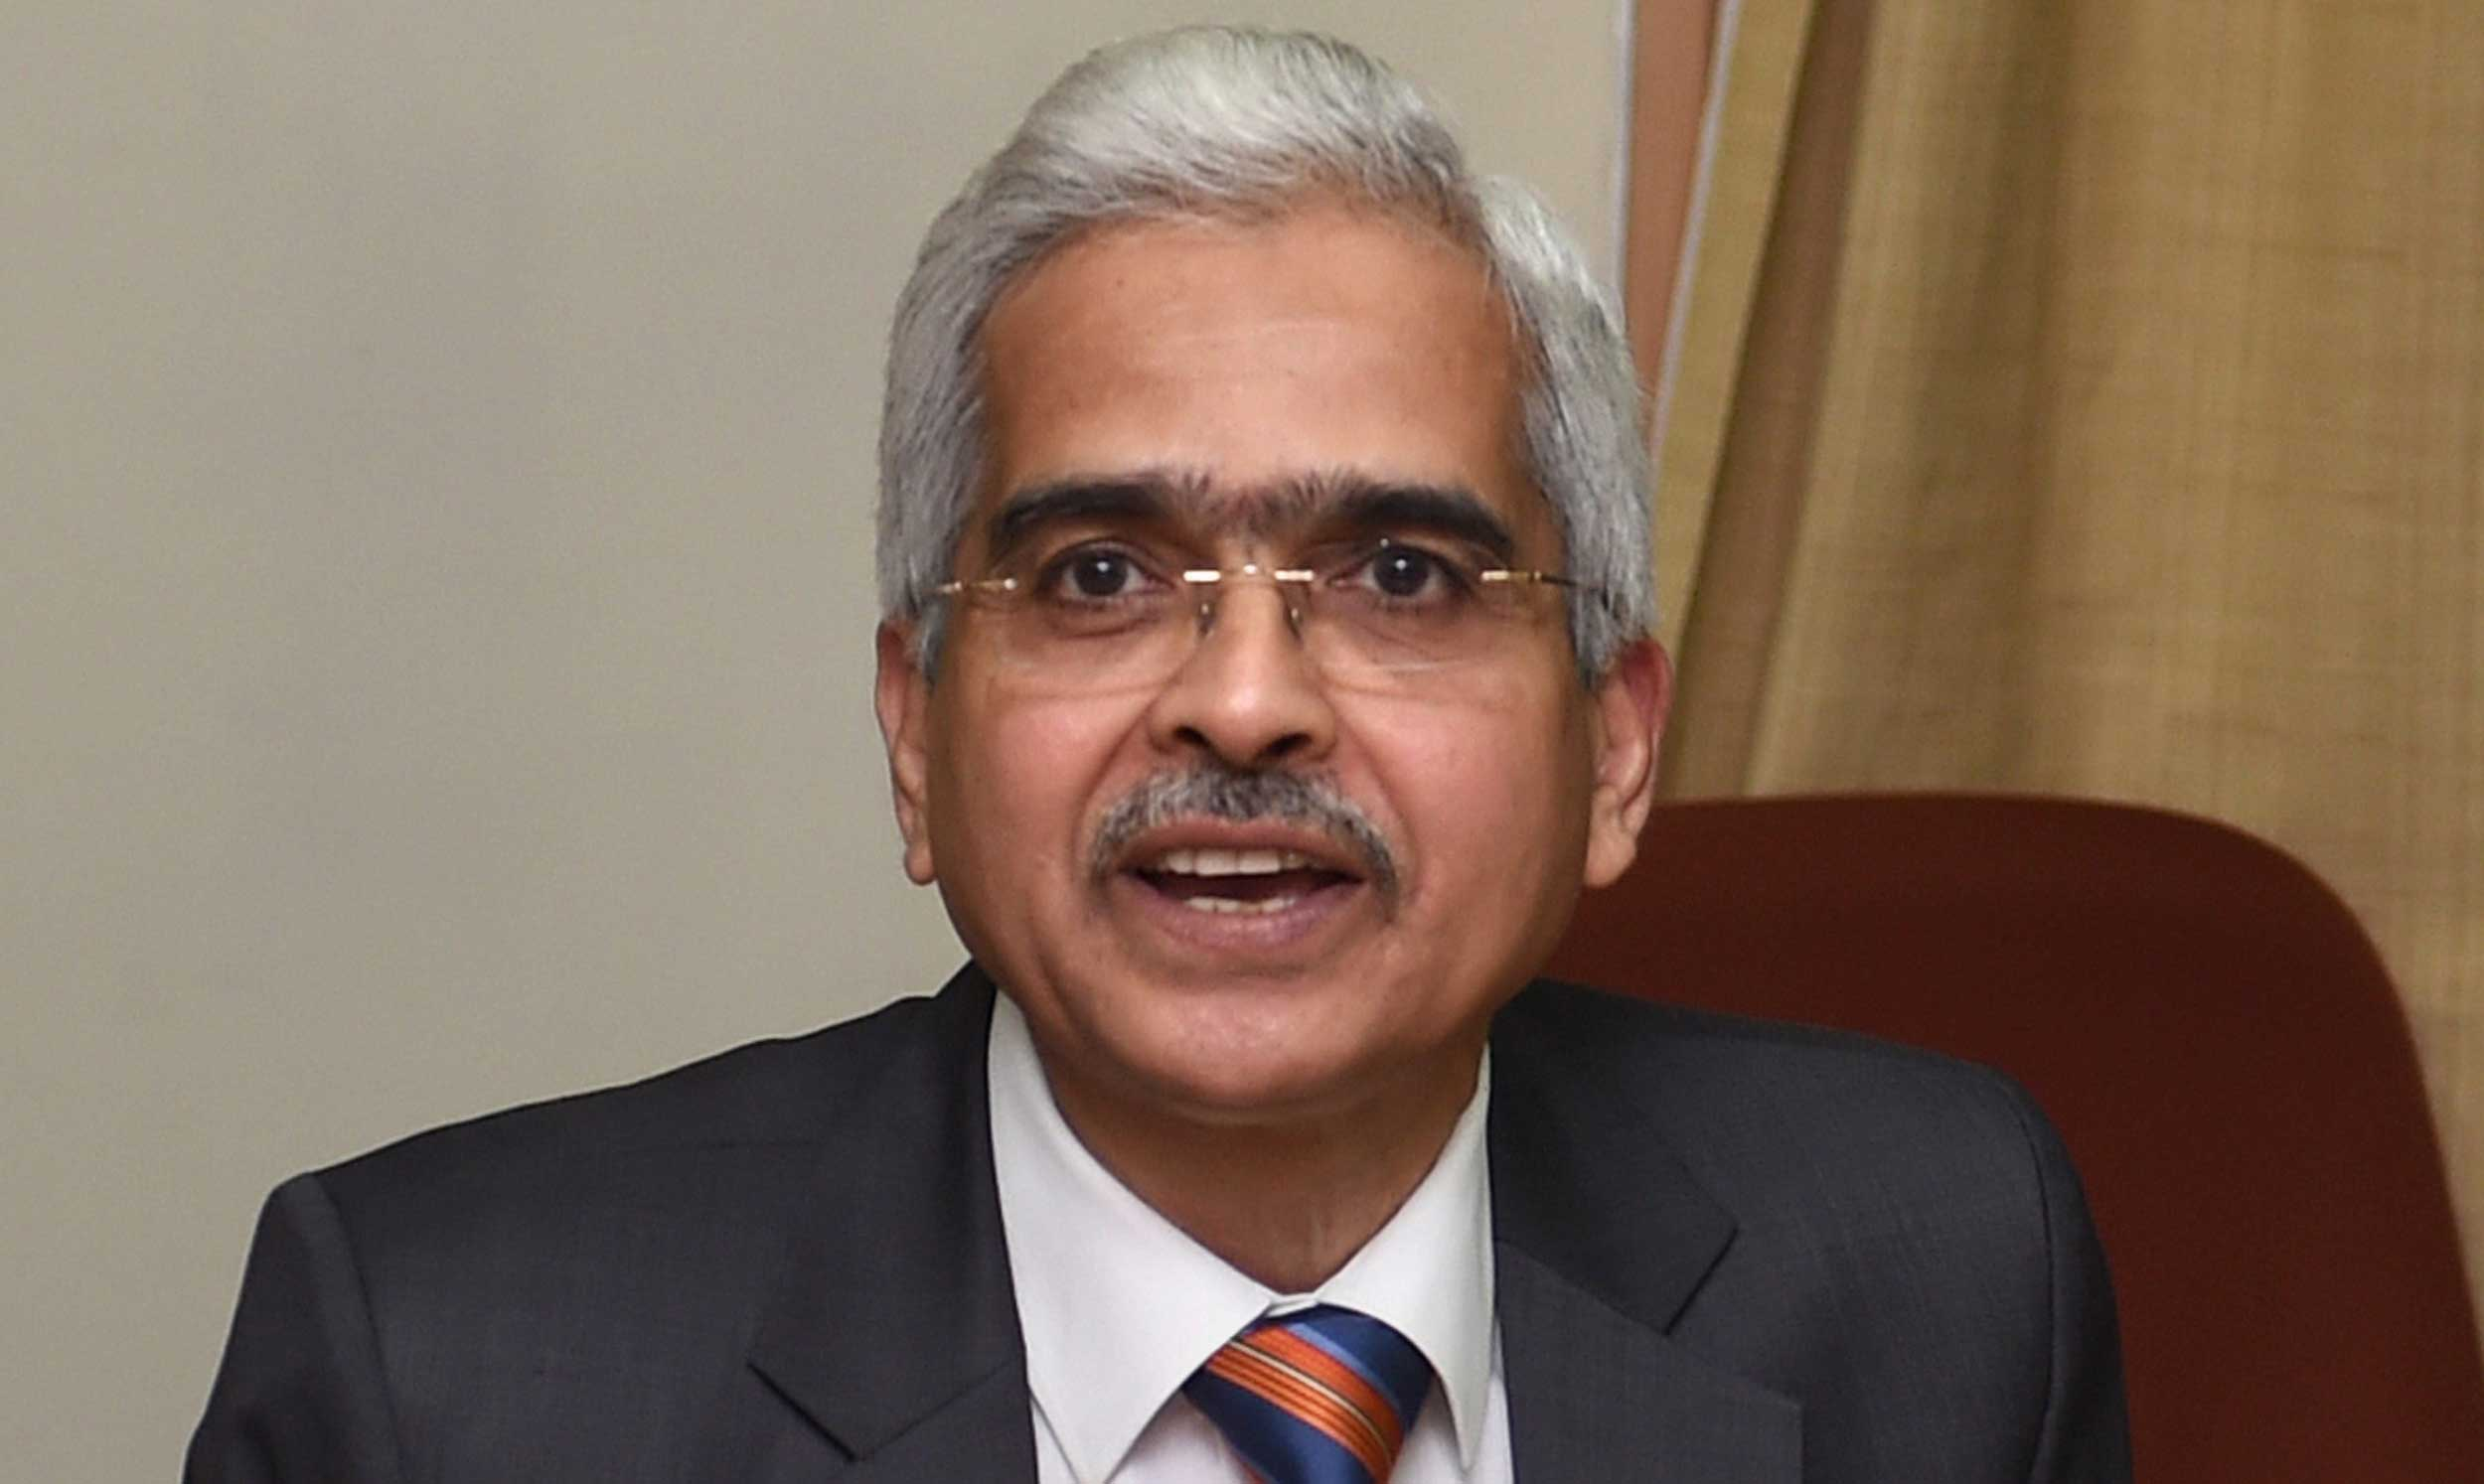 RBI governor Shaktikanta Das hoped for the US-China truce on trade tariffs, announced over the weekend, would last as he pitched for coordinated efforts to push global growth like those after the 2008 financial crisis.